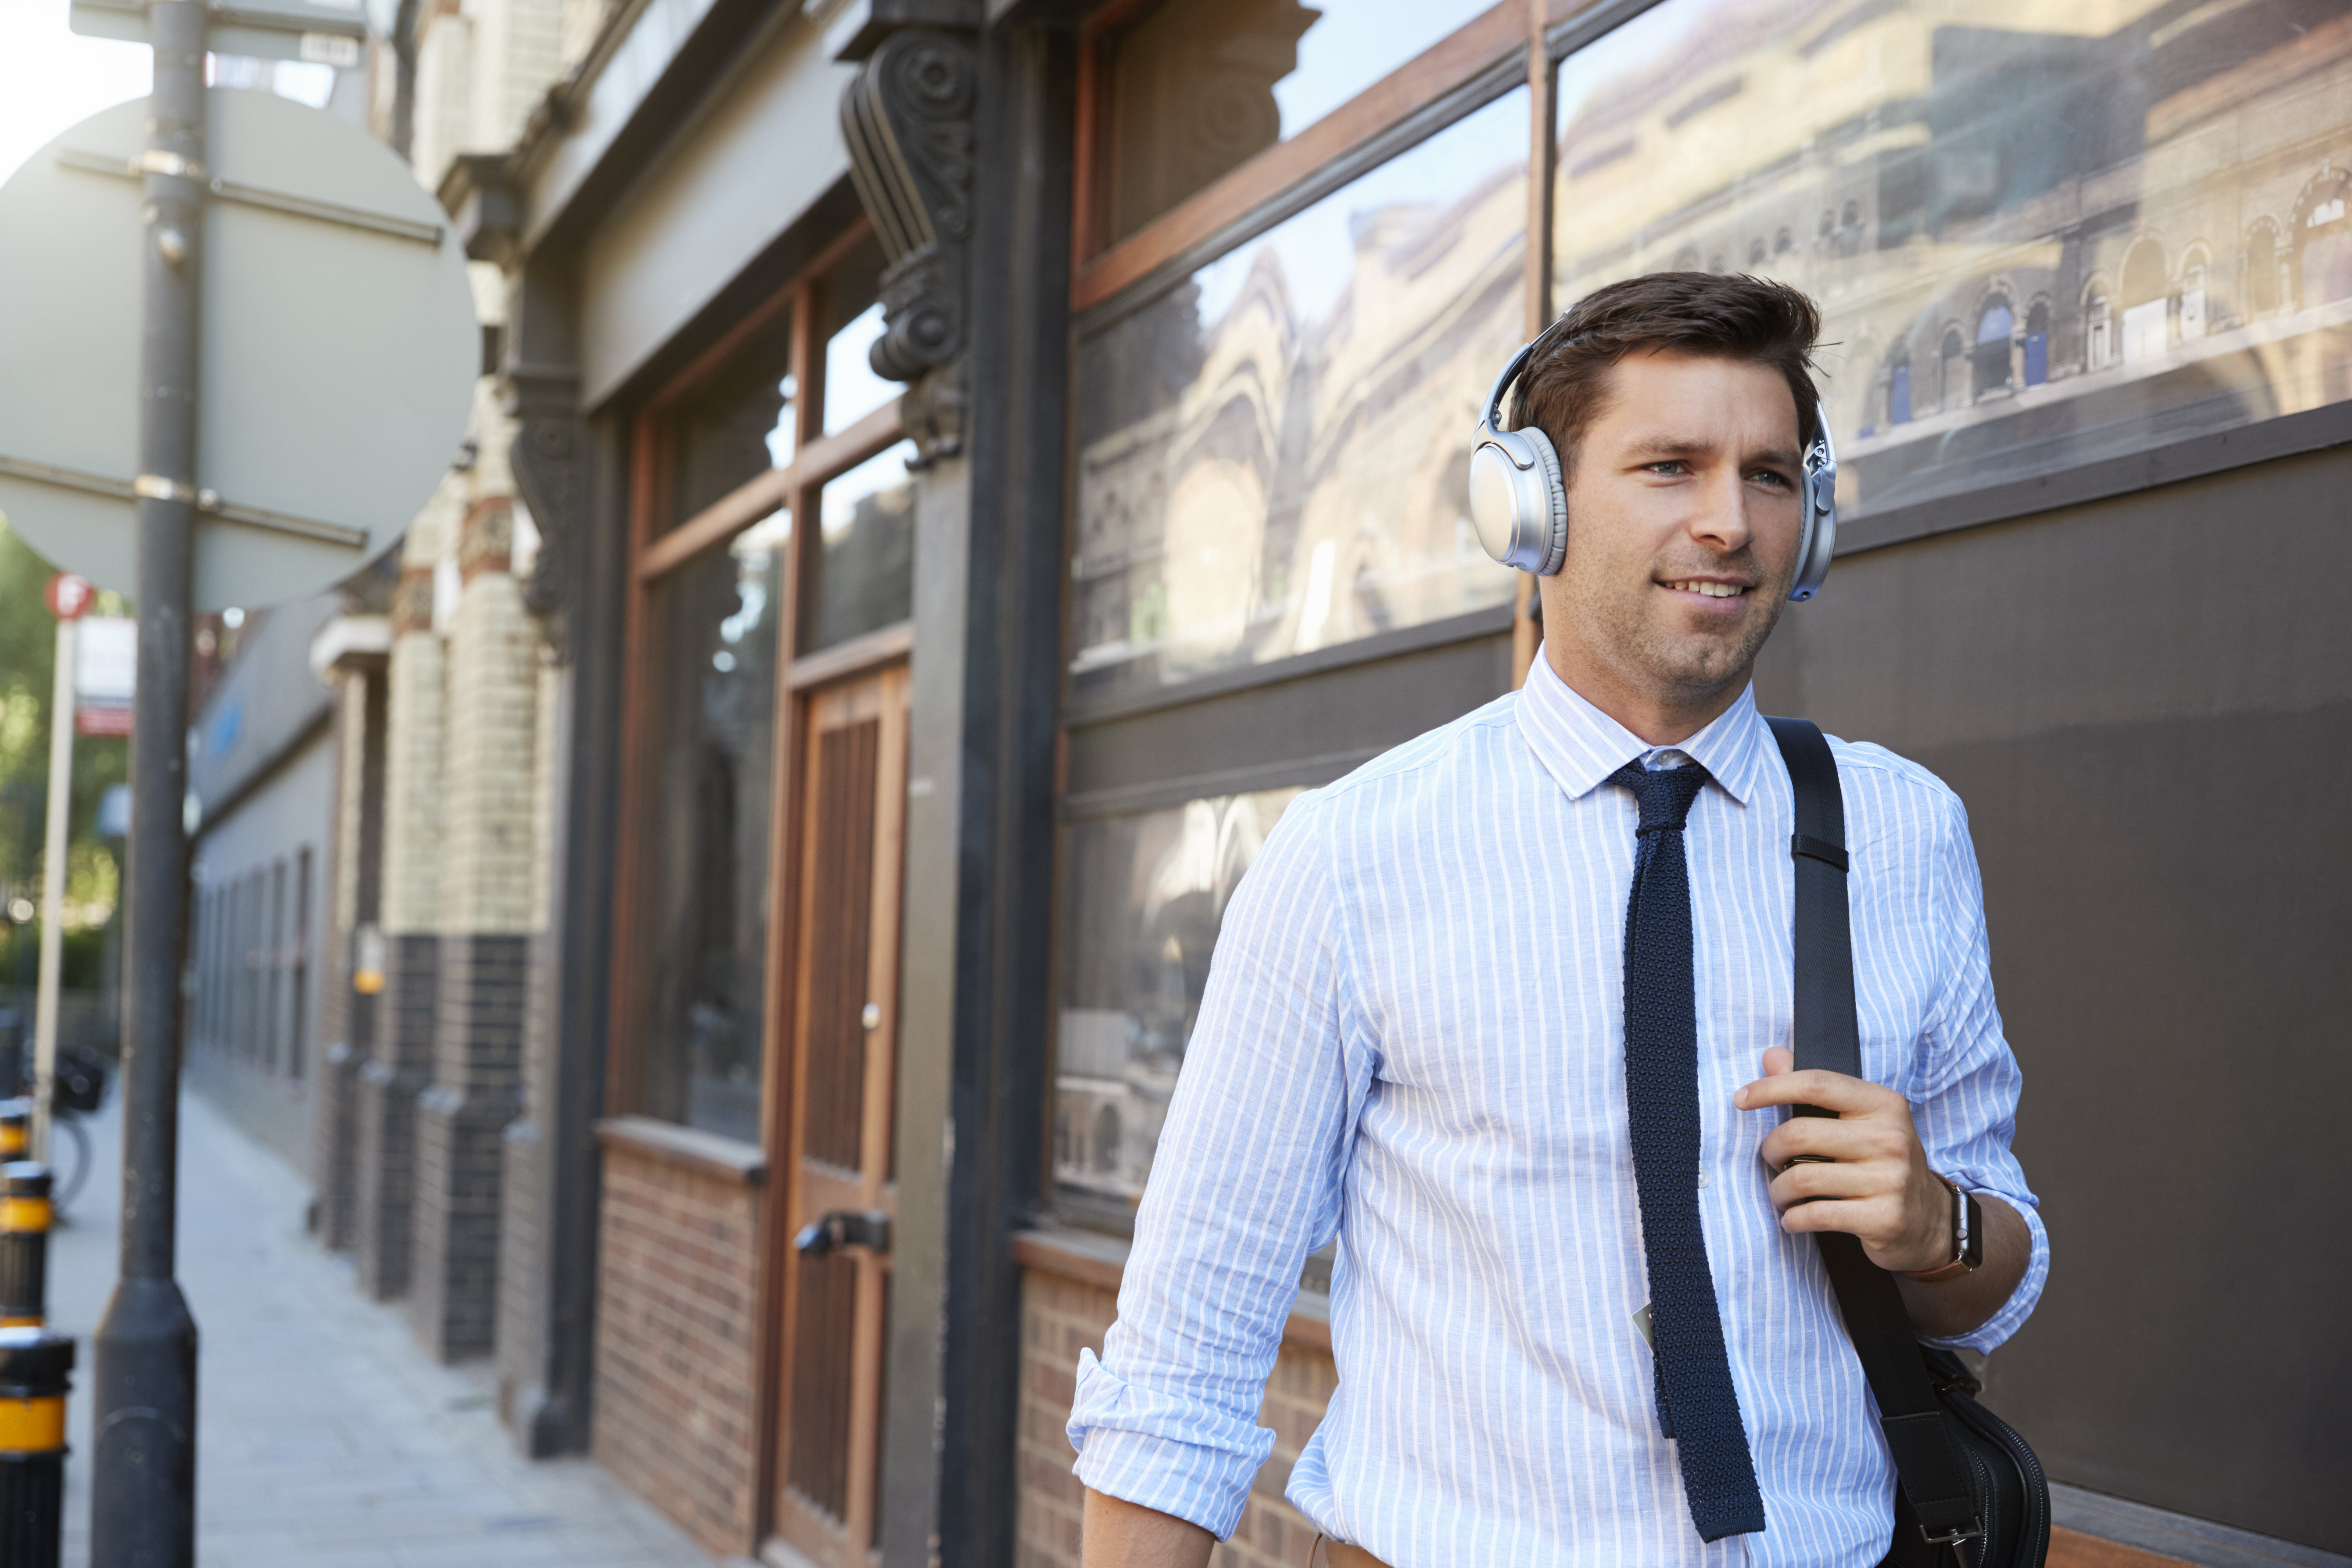 Businessman smartly dressed walking down street wearing headphones and learning